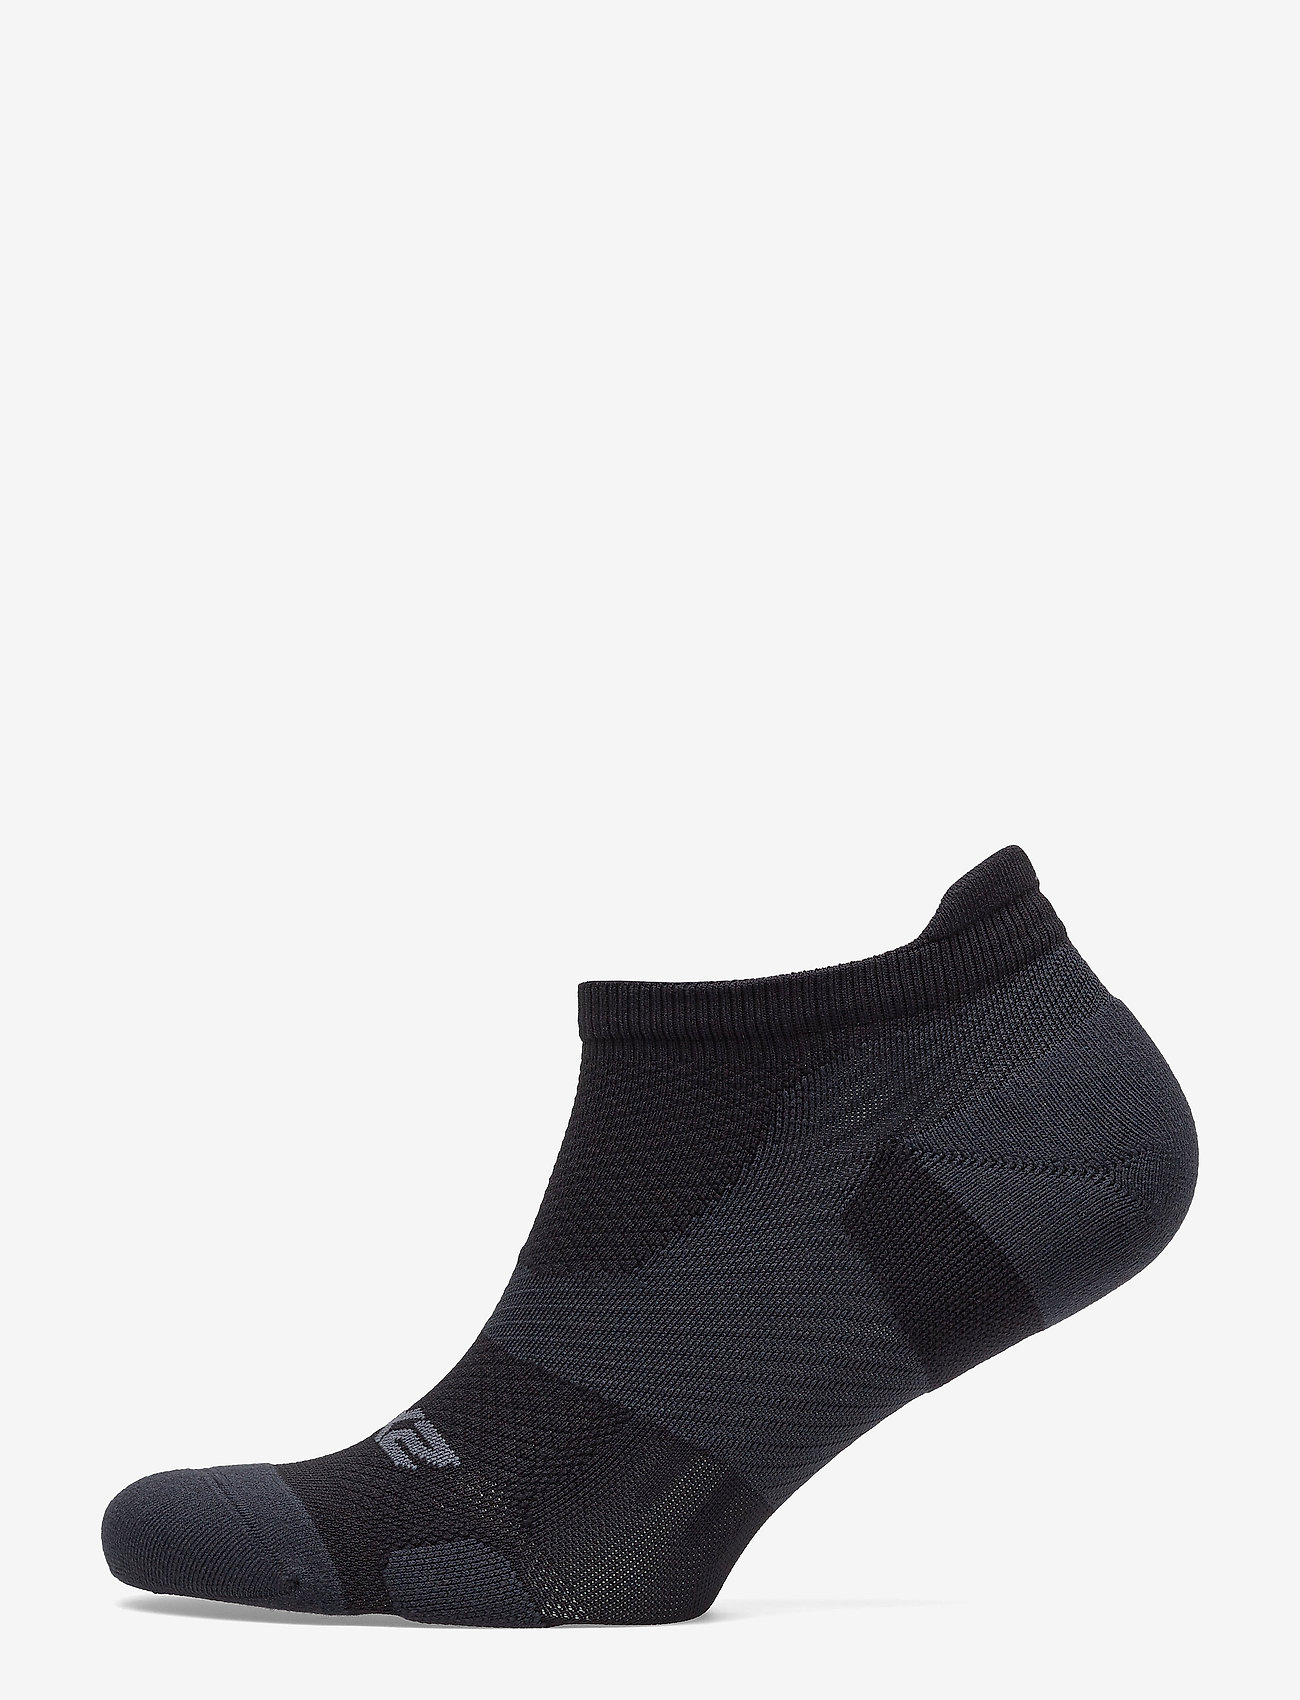 2XU - VECTR LIGHTCUSHION NO SHOW SO - footies - black/titanium - 0